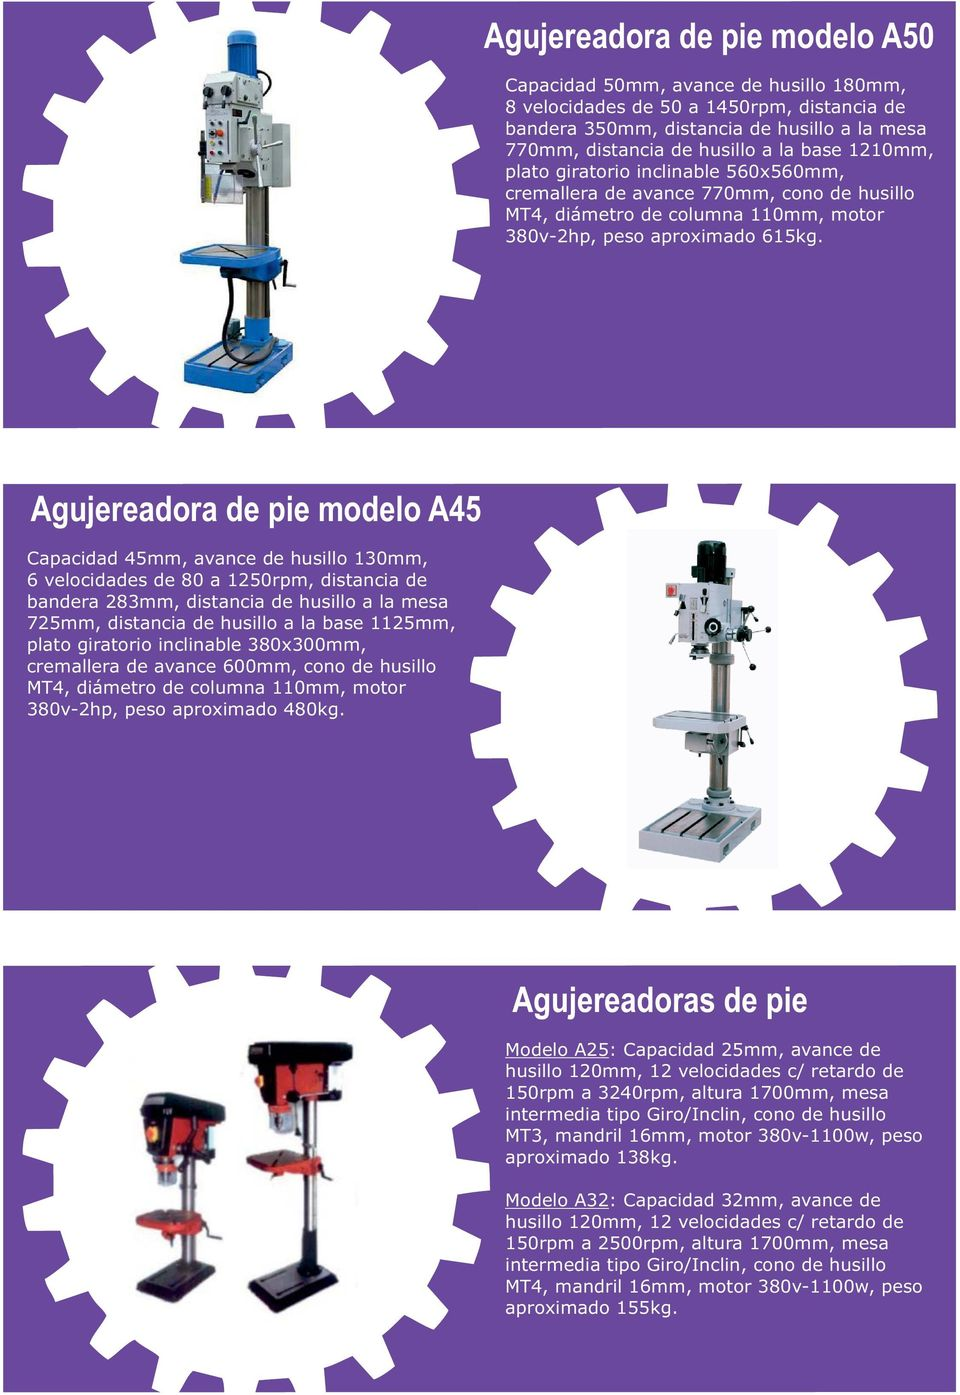 Agujereadora de pie modelo A45 Capacidad 45mm, avance de husillo 130mm, 6 velocidades de 80 a 1250rpm, distancia de bandera 283mm, distancia de husillo a la mesa 725mm, distancia de husillo a la base